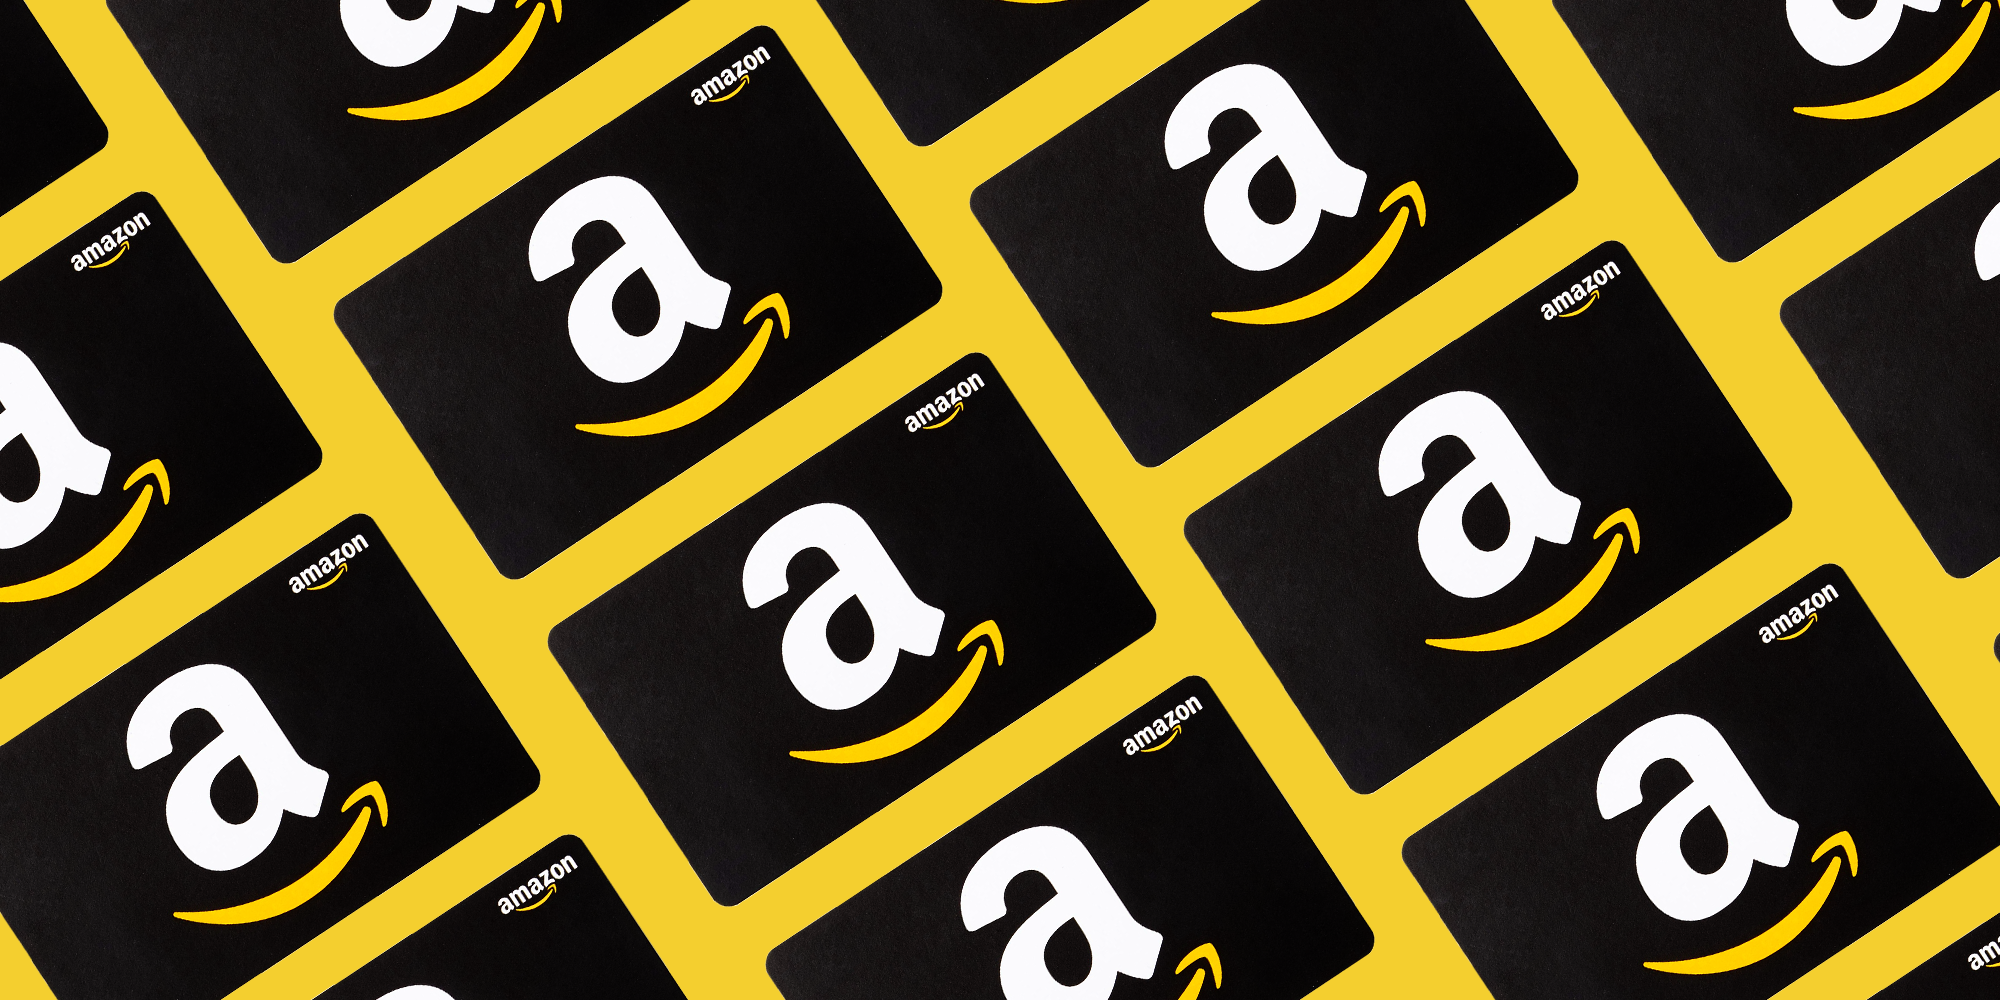 Where To Buy Amazon Gift Cards Stores That Sell Amazon Gift Cards